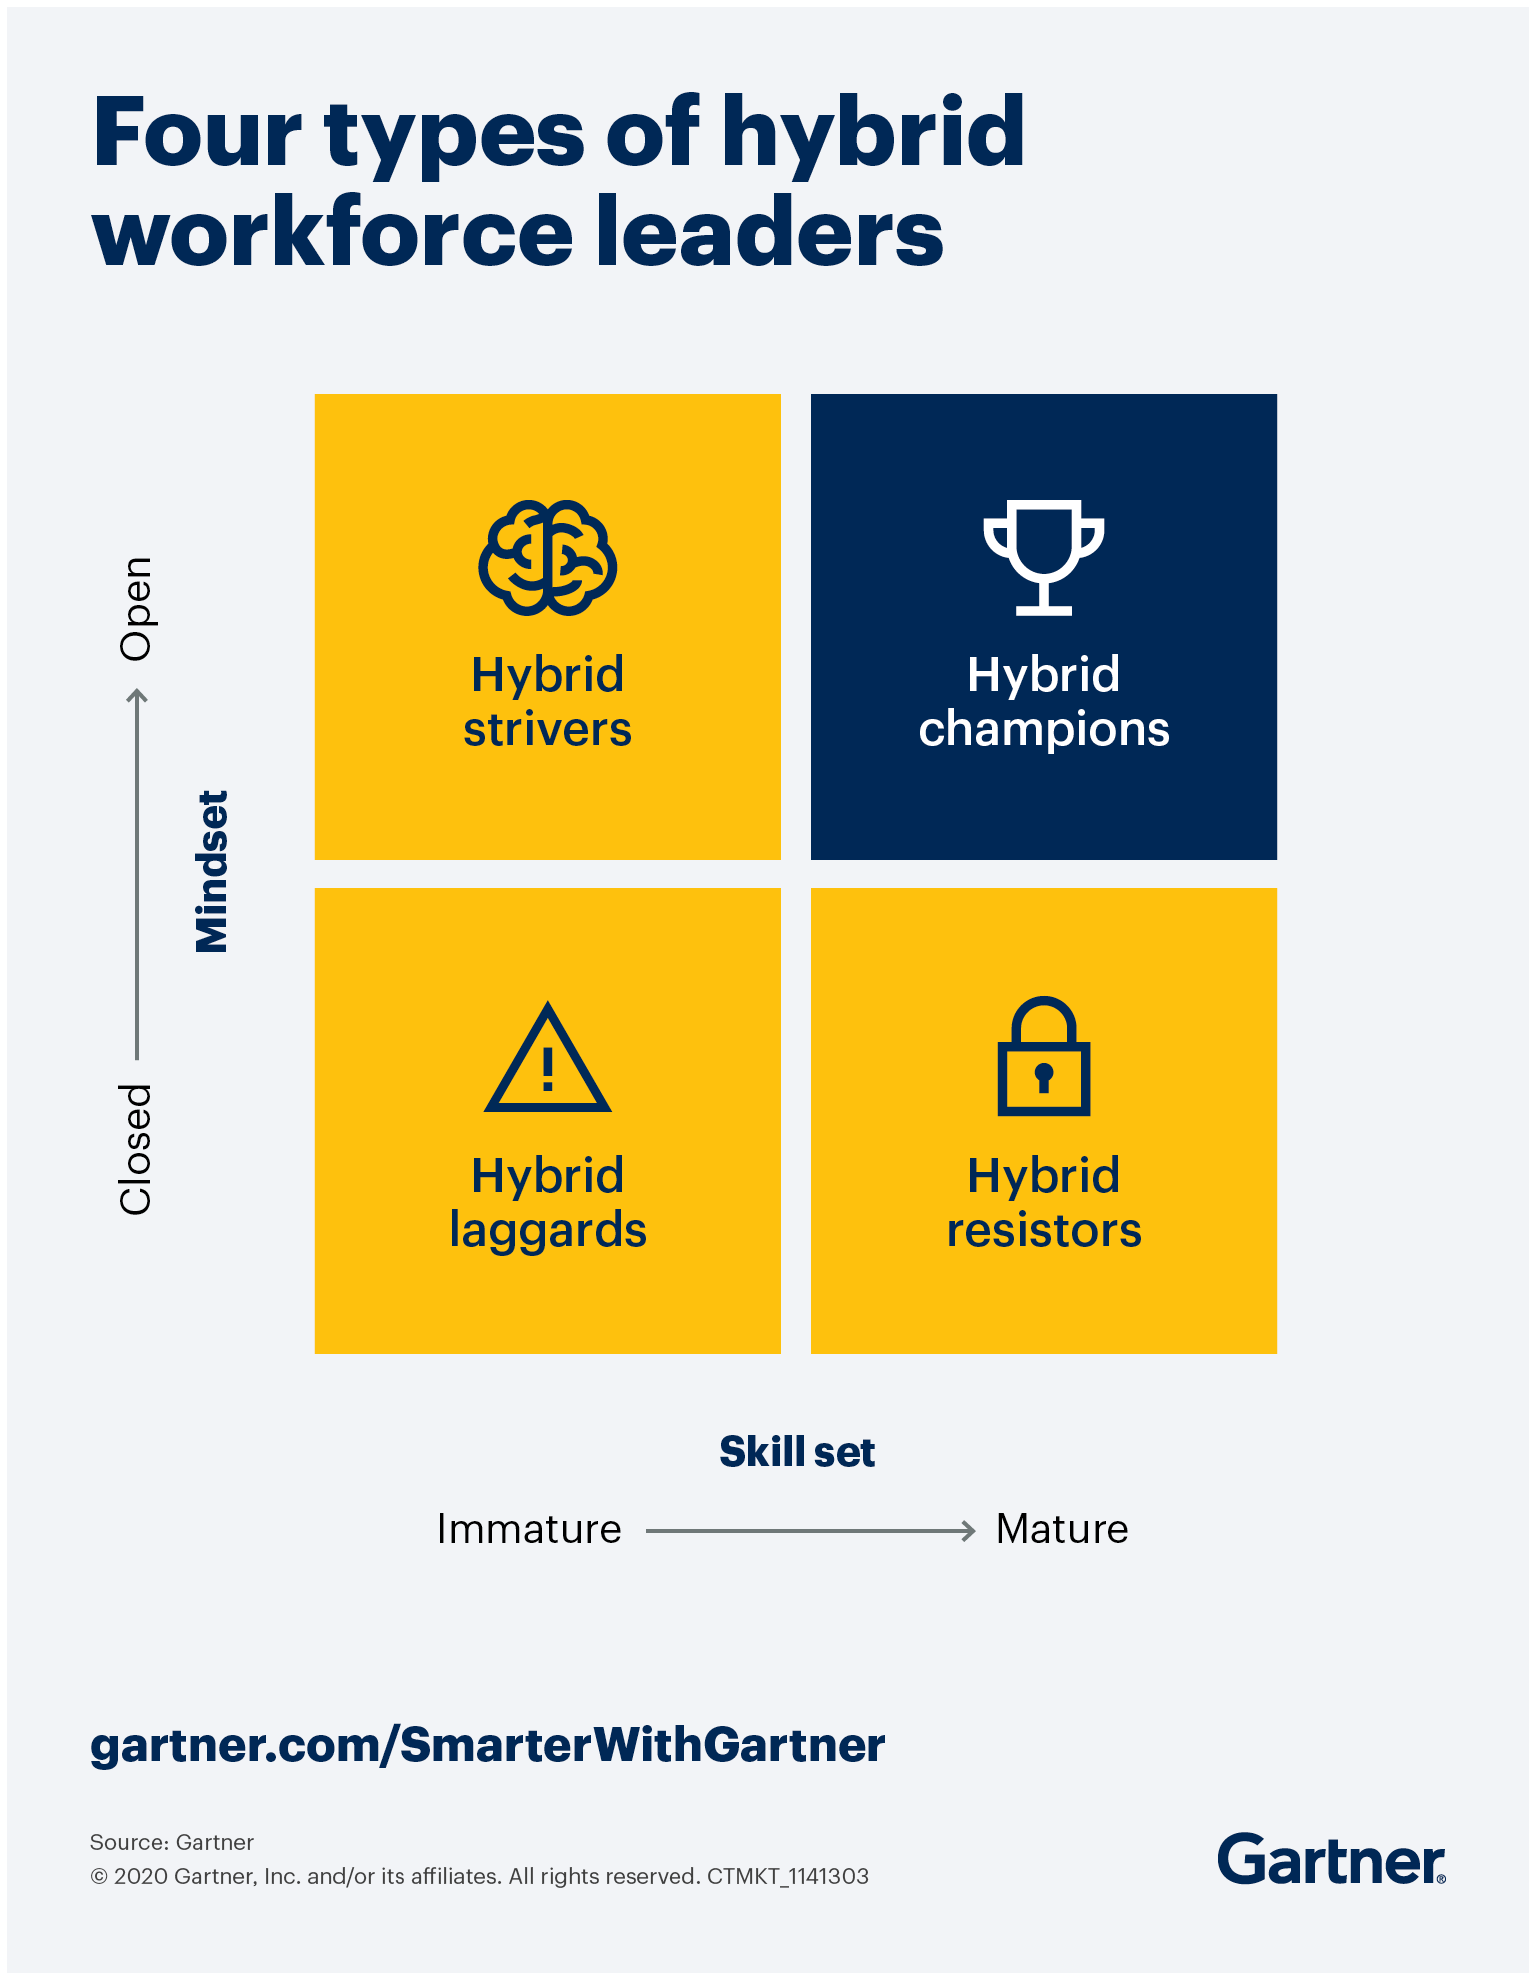 Hybrid workforce models take leadership to succeed. Know the four types of hybrid workforce leaders: Champions, strivers, resistors and laggards so you know who to develop, and how, to capture the potential of hybrid workforce models.